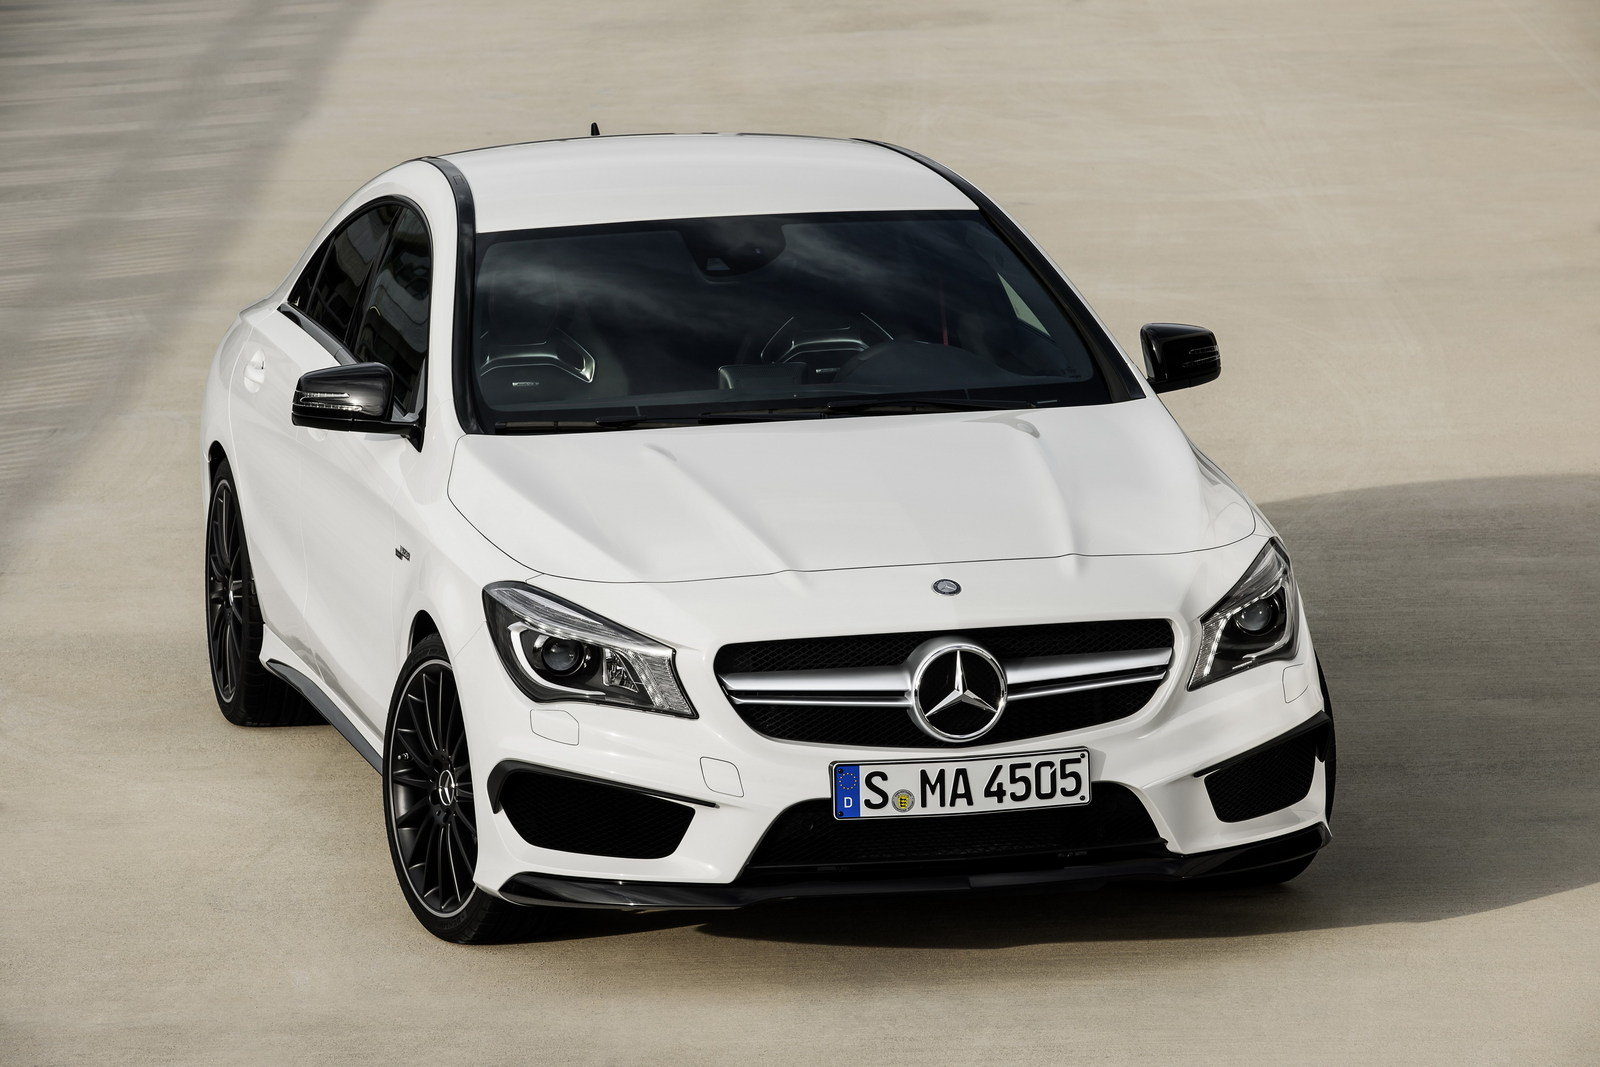 2014 mercedes cla 45 amg review top speed. Black Bedroom Furniture Sets. Home Design Ideas